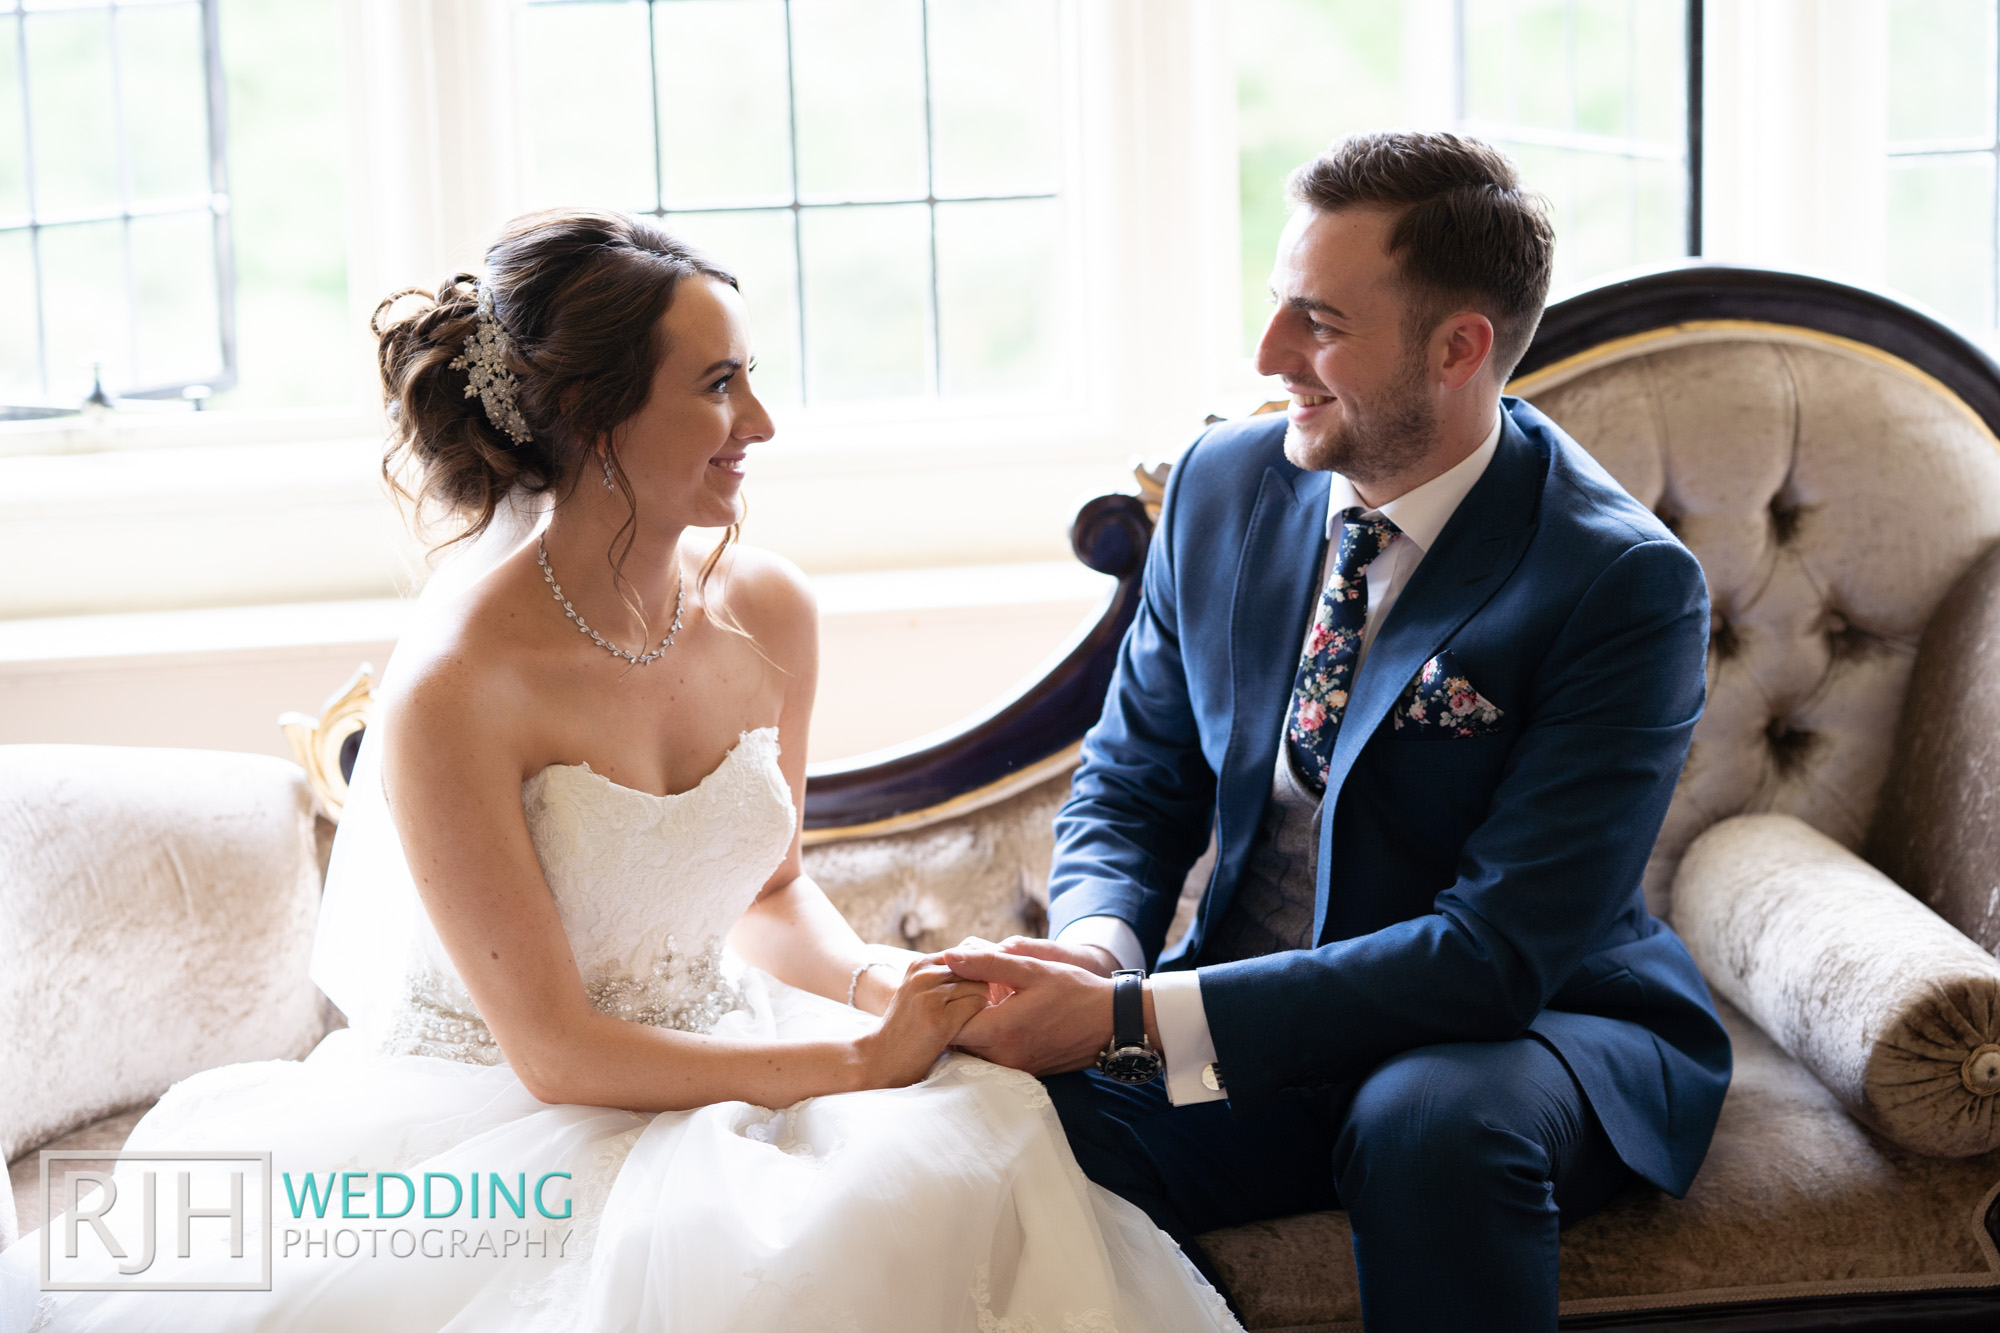 Whirlowbrook Hall Wedding Photography_Jack & Lydia_061_DS205688.jpg